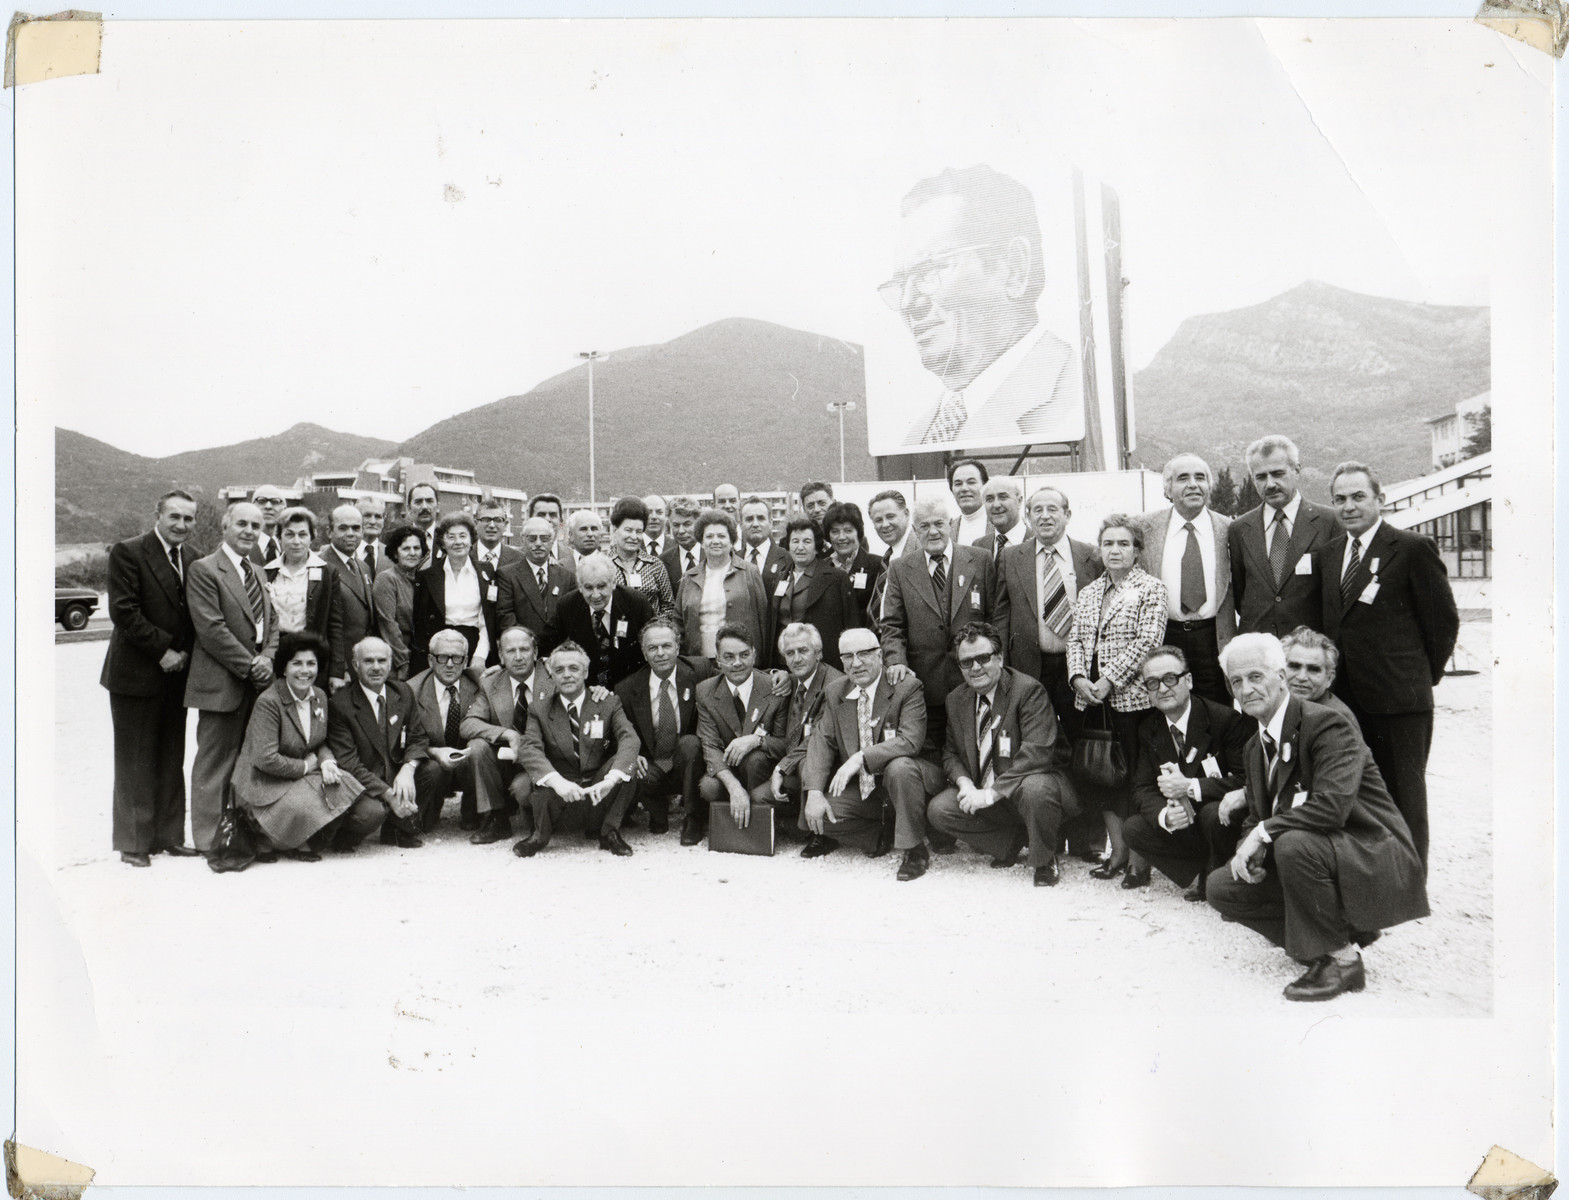 Members of the 8th Congress of Yugoslav Resistance Fighters in Budva, Montenegro pose in front of a large banner depicting Josip Broz Tito.  Among those pictured is Jamila Kolonomos (second row, eleventh from the left).